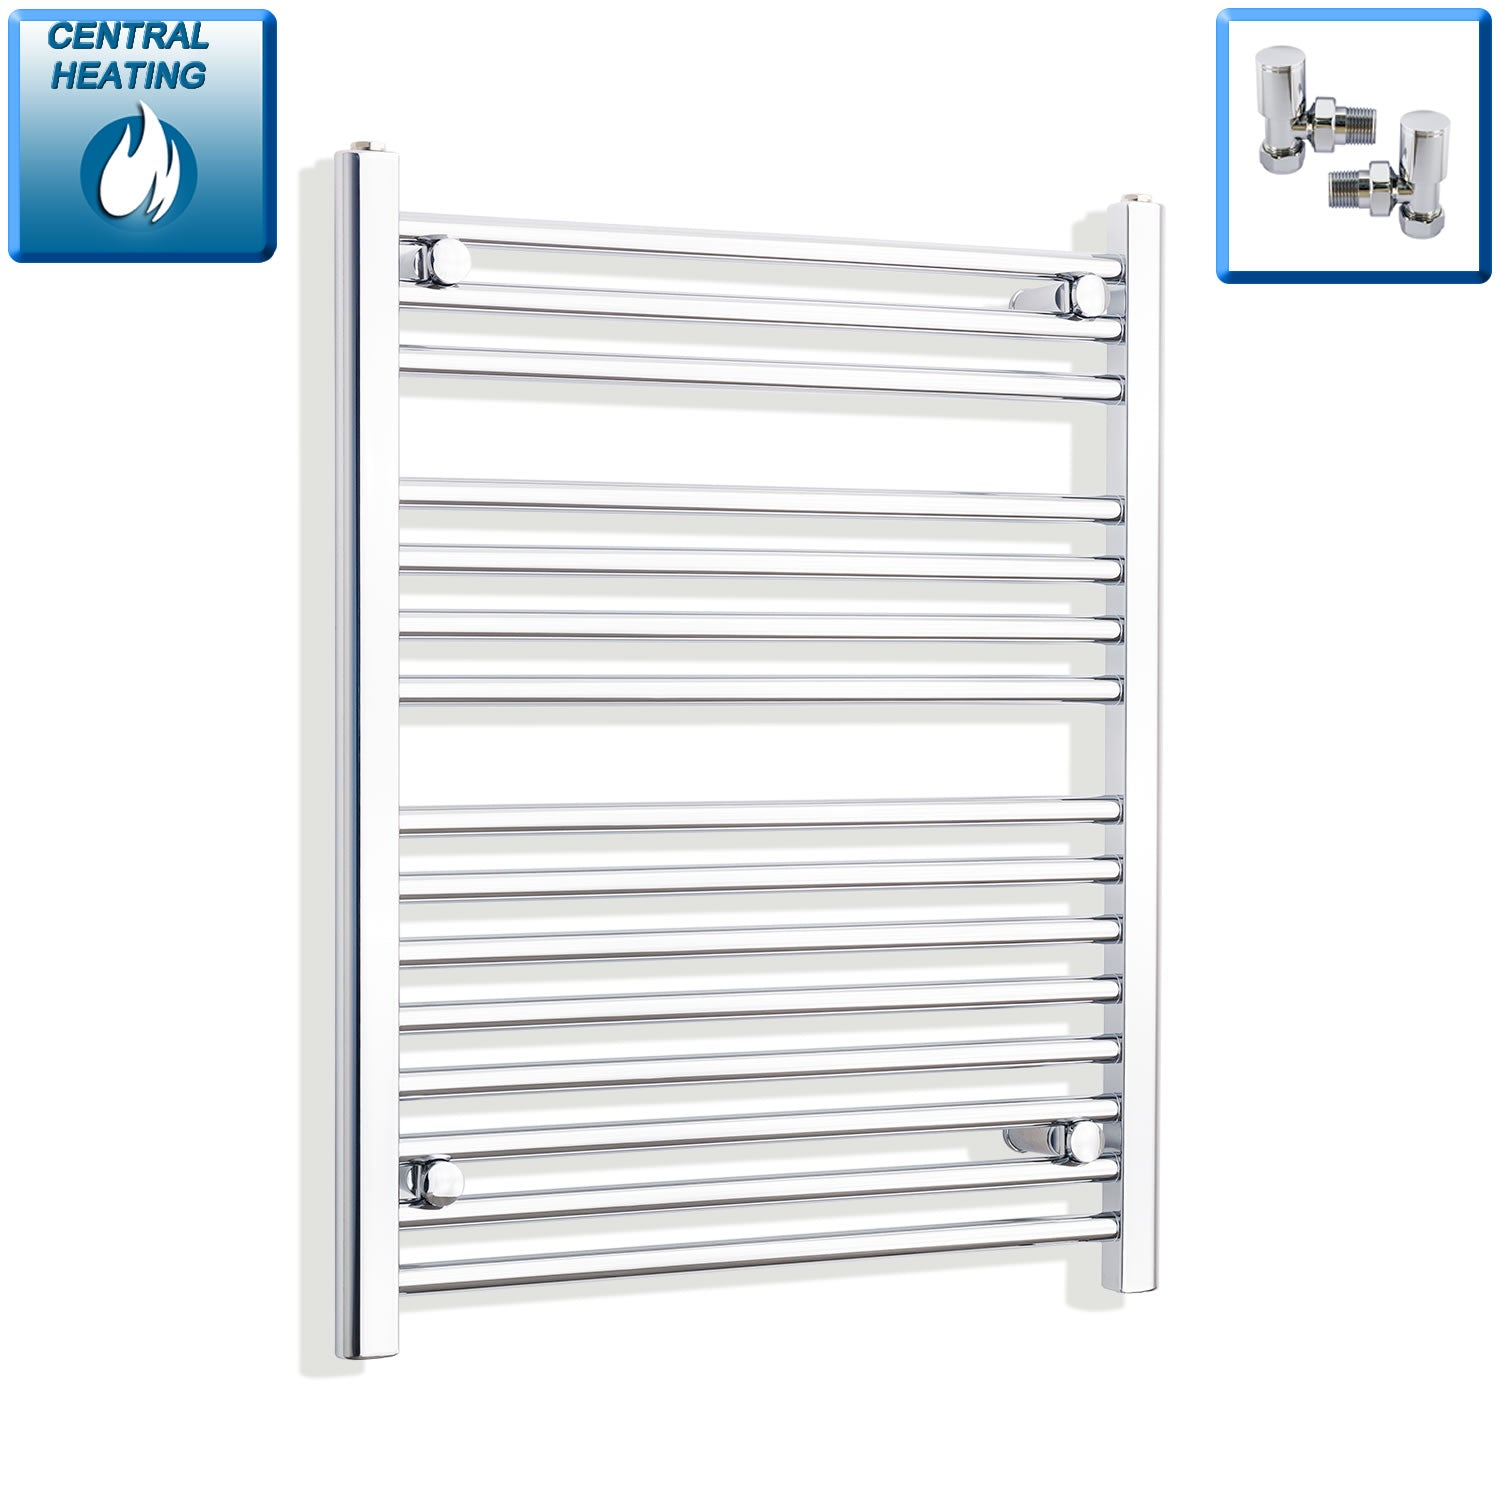 700mm Wide 800mm High Curved Chrome Heated Towel Rail Radiator HTR,With Angled Valve